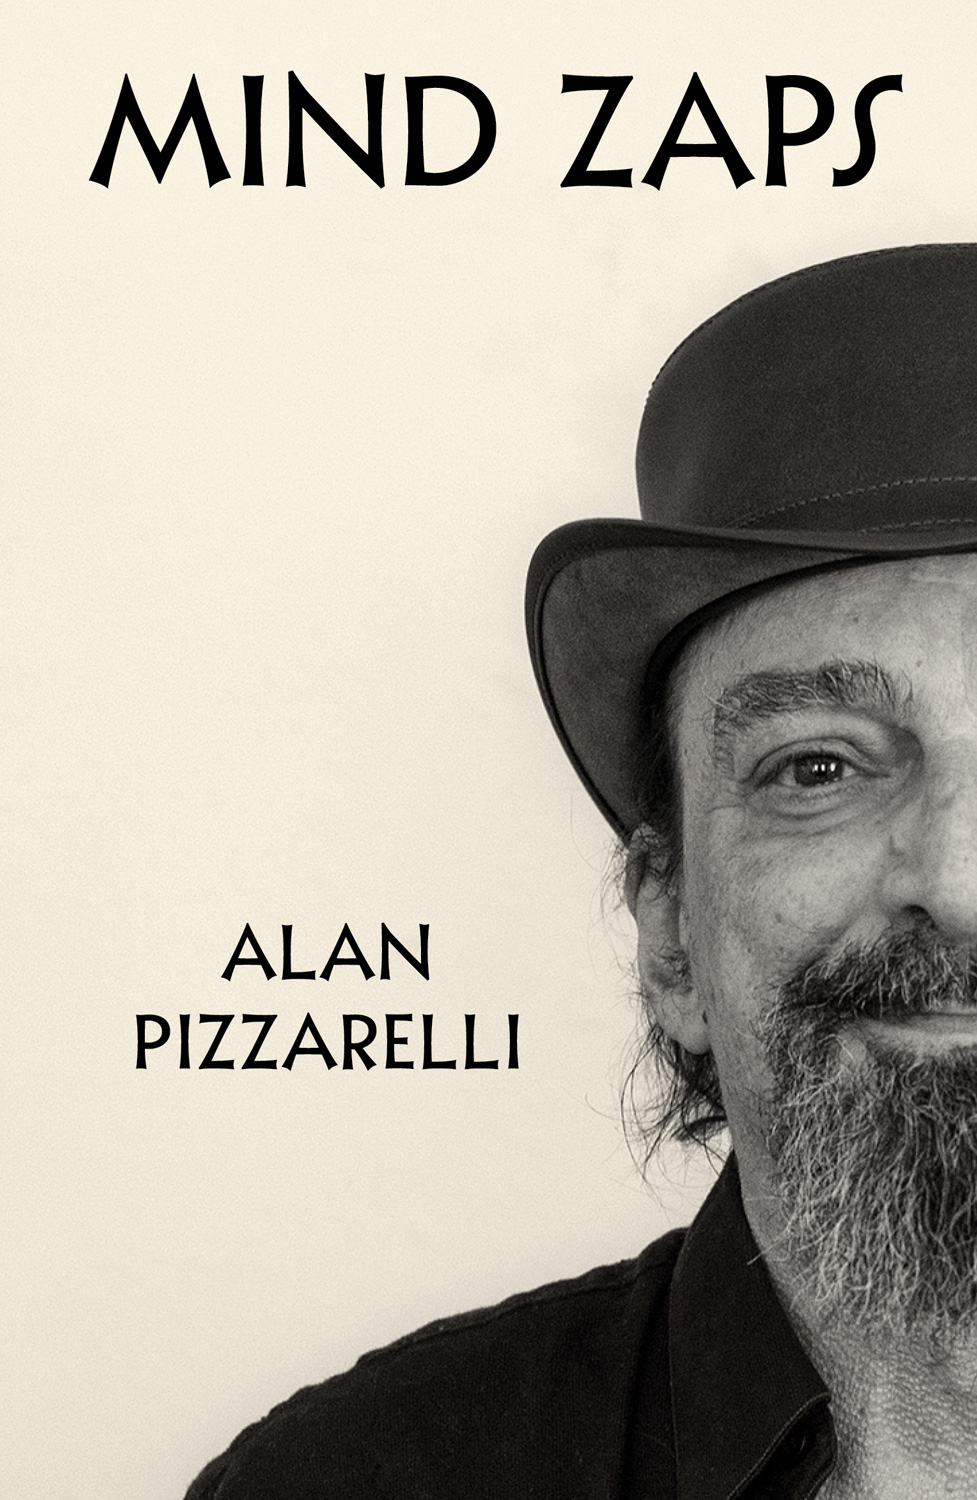 New Book from House of Haiku! - Mind Zaps by Alan Pizzarelli